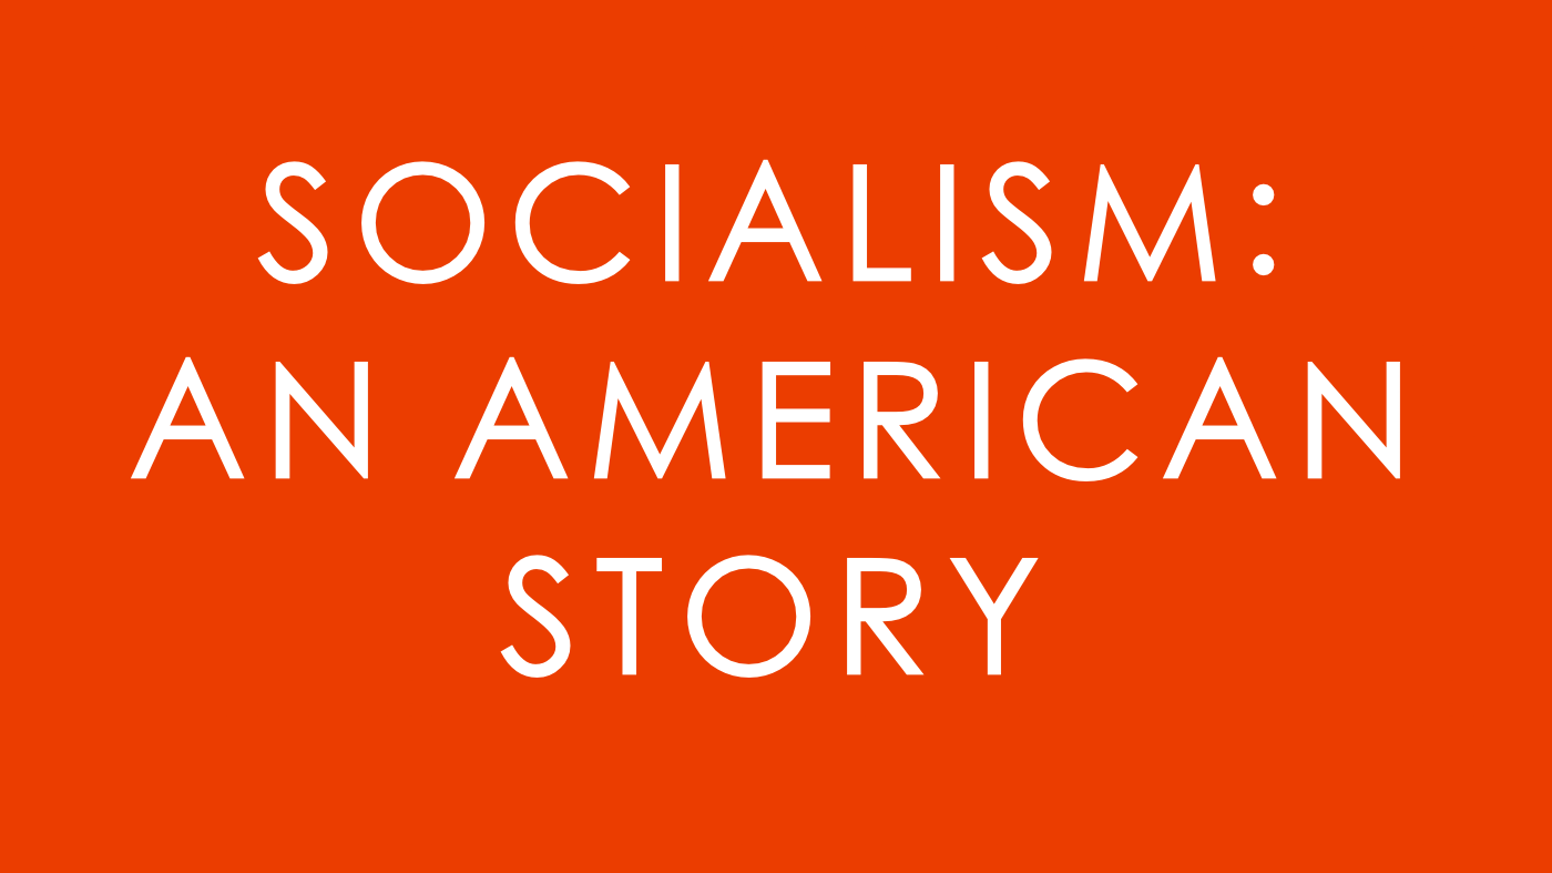 A feature-length documentary on the history and resurgence of socialism in America.